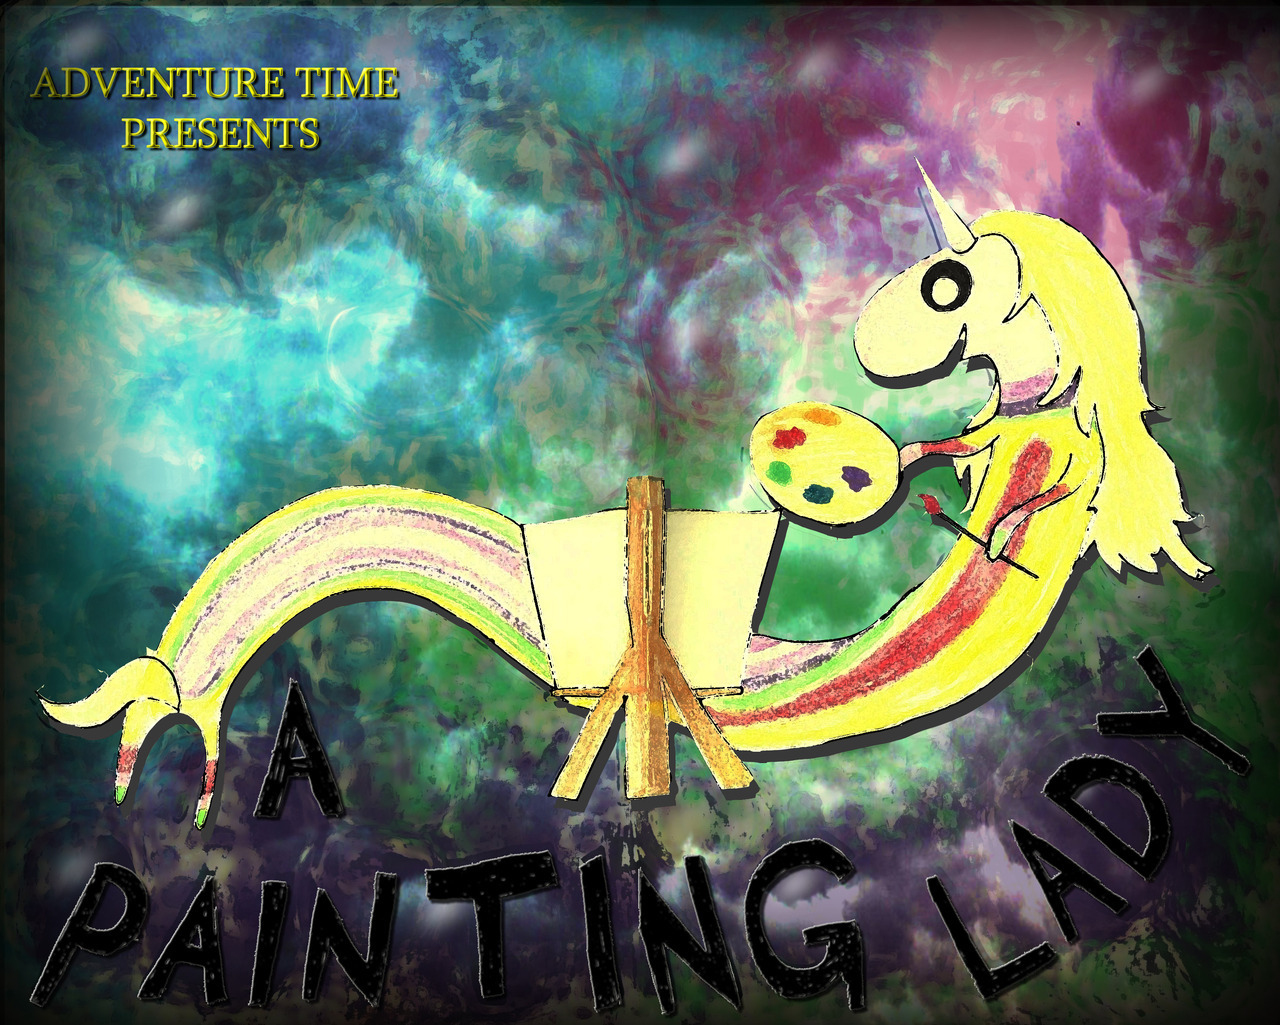 A Painting Lady - An Adventure Time Spec Script This is my spec script and storyboard I've been working on for the past month. I had a lot of fun writing this and developing my ideas.  I'm just looking for feedback from other fans of the show :)  Thank You!'  Thanks event for the submission.